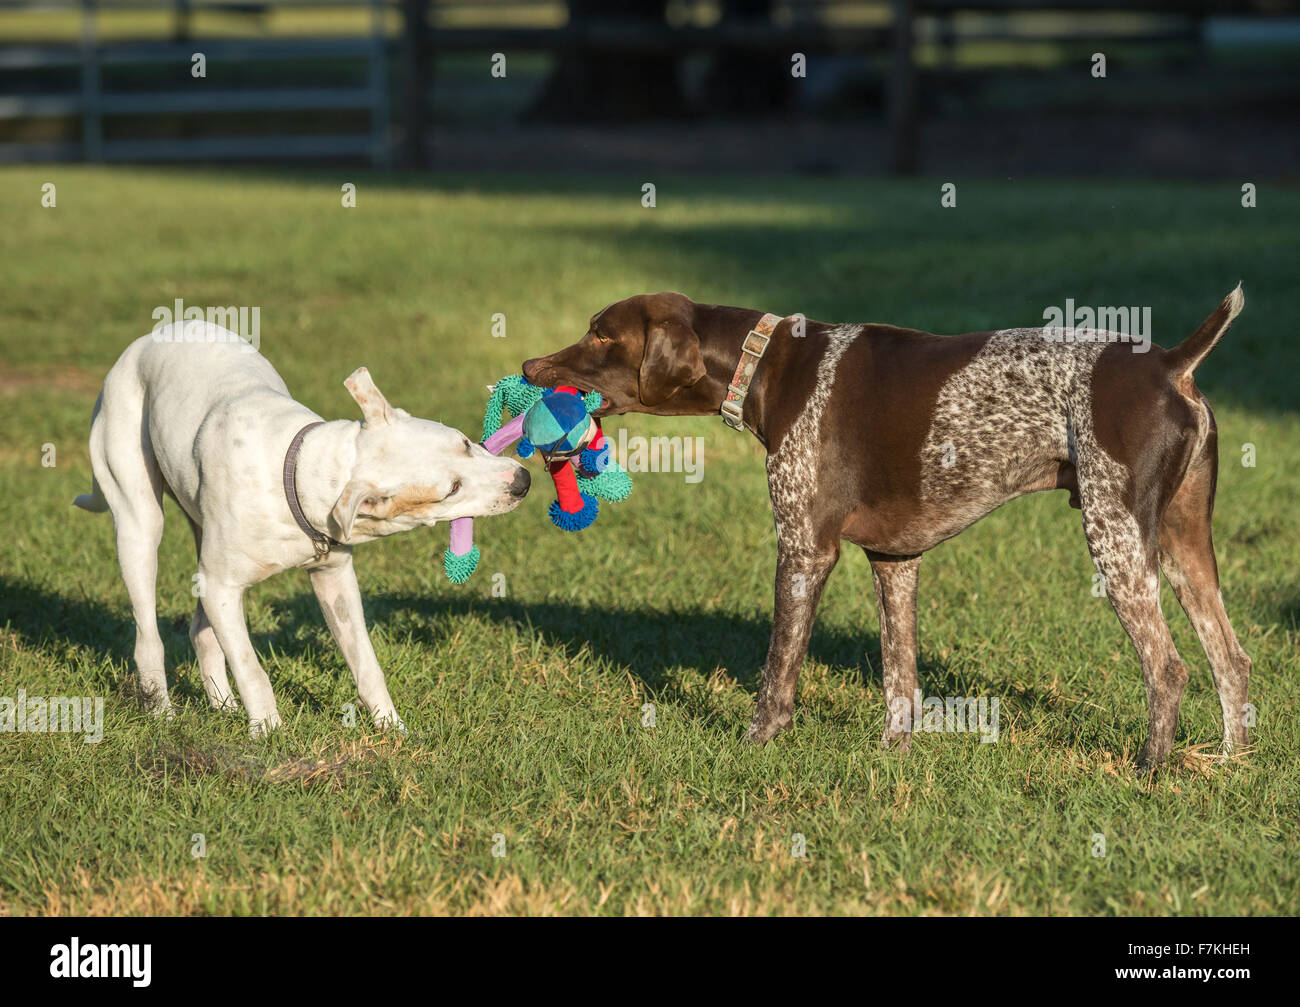 Two dogs tug with toy in grass yard - Stock Image